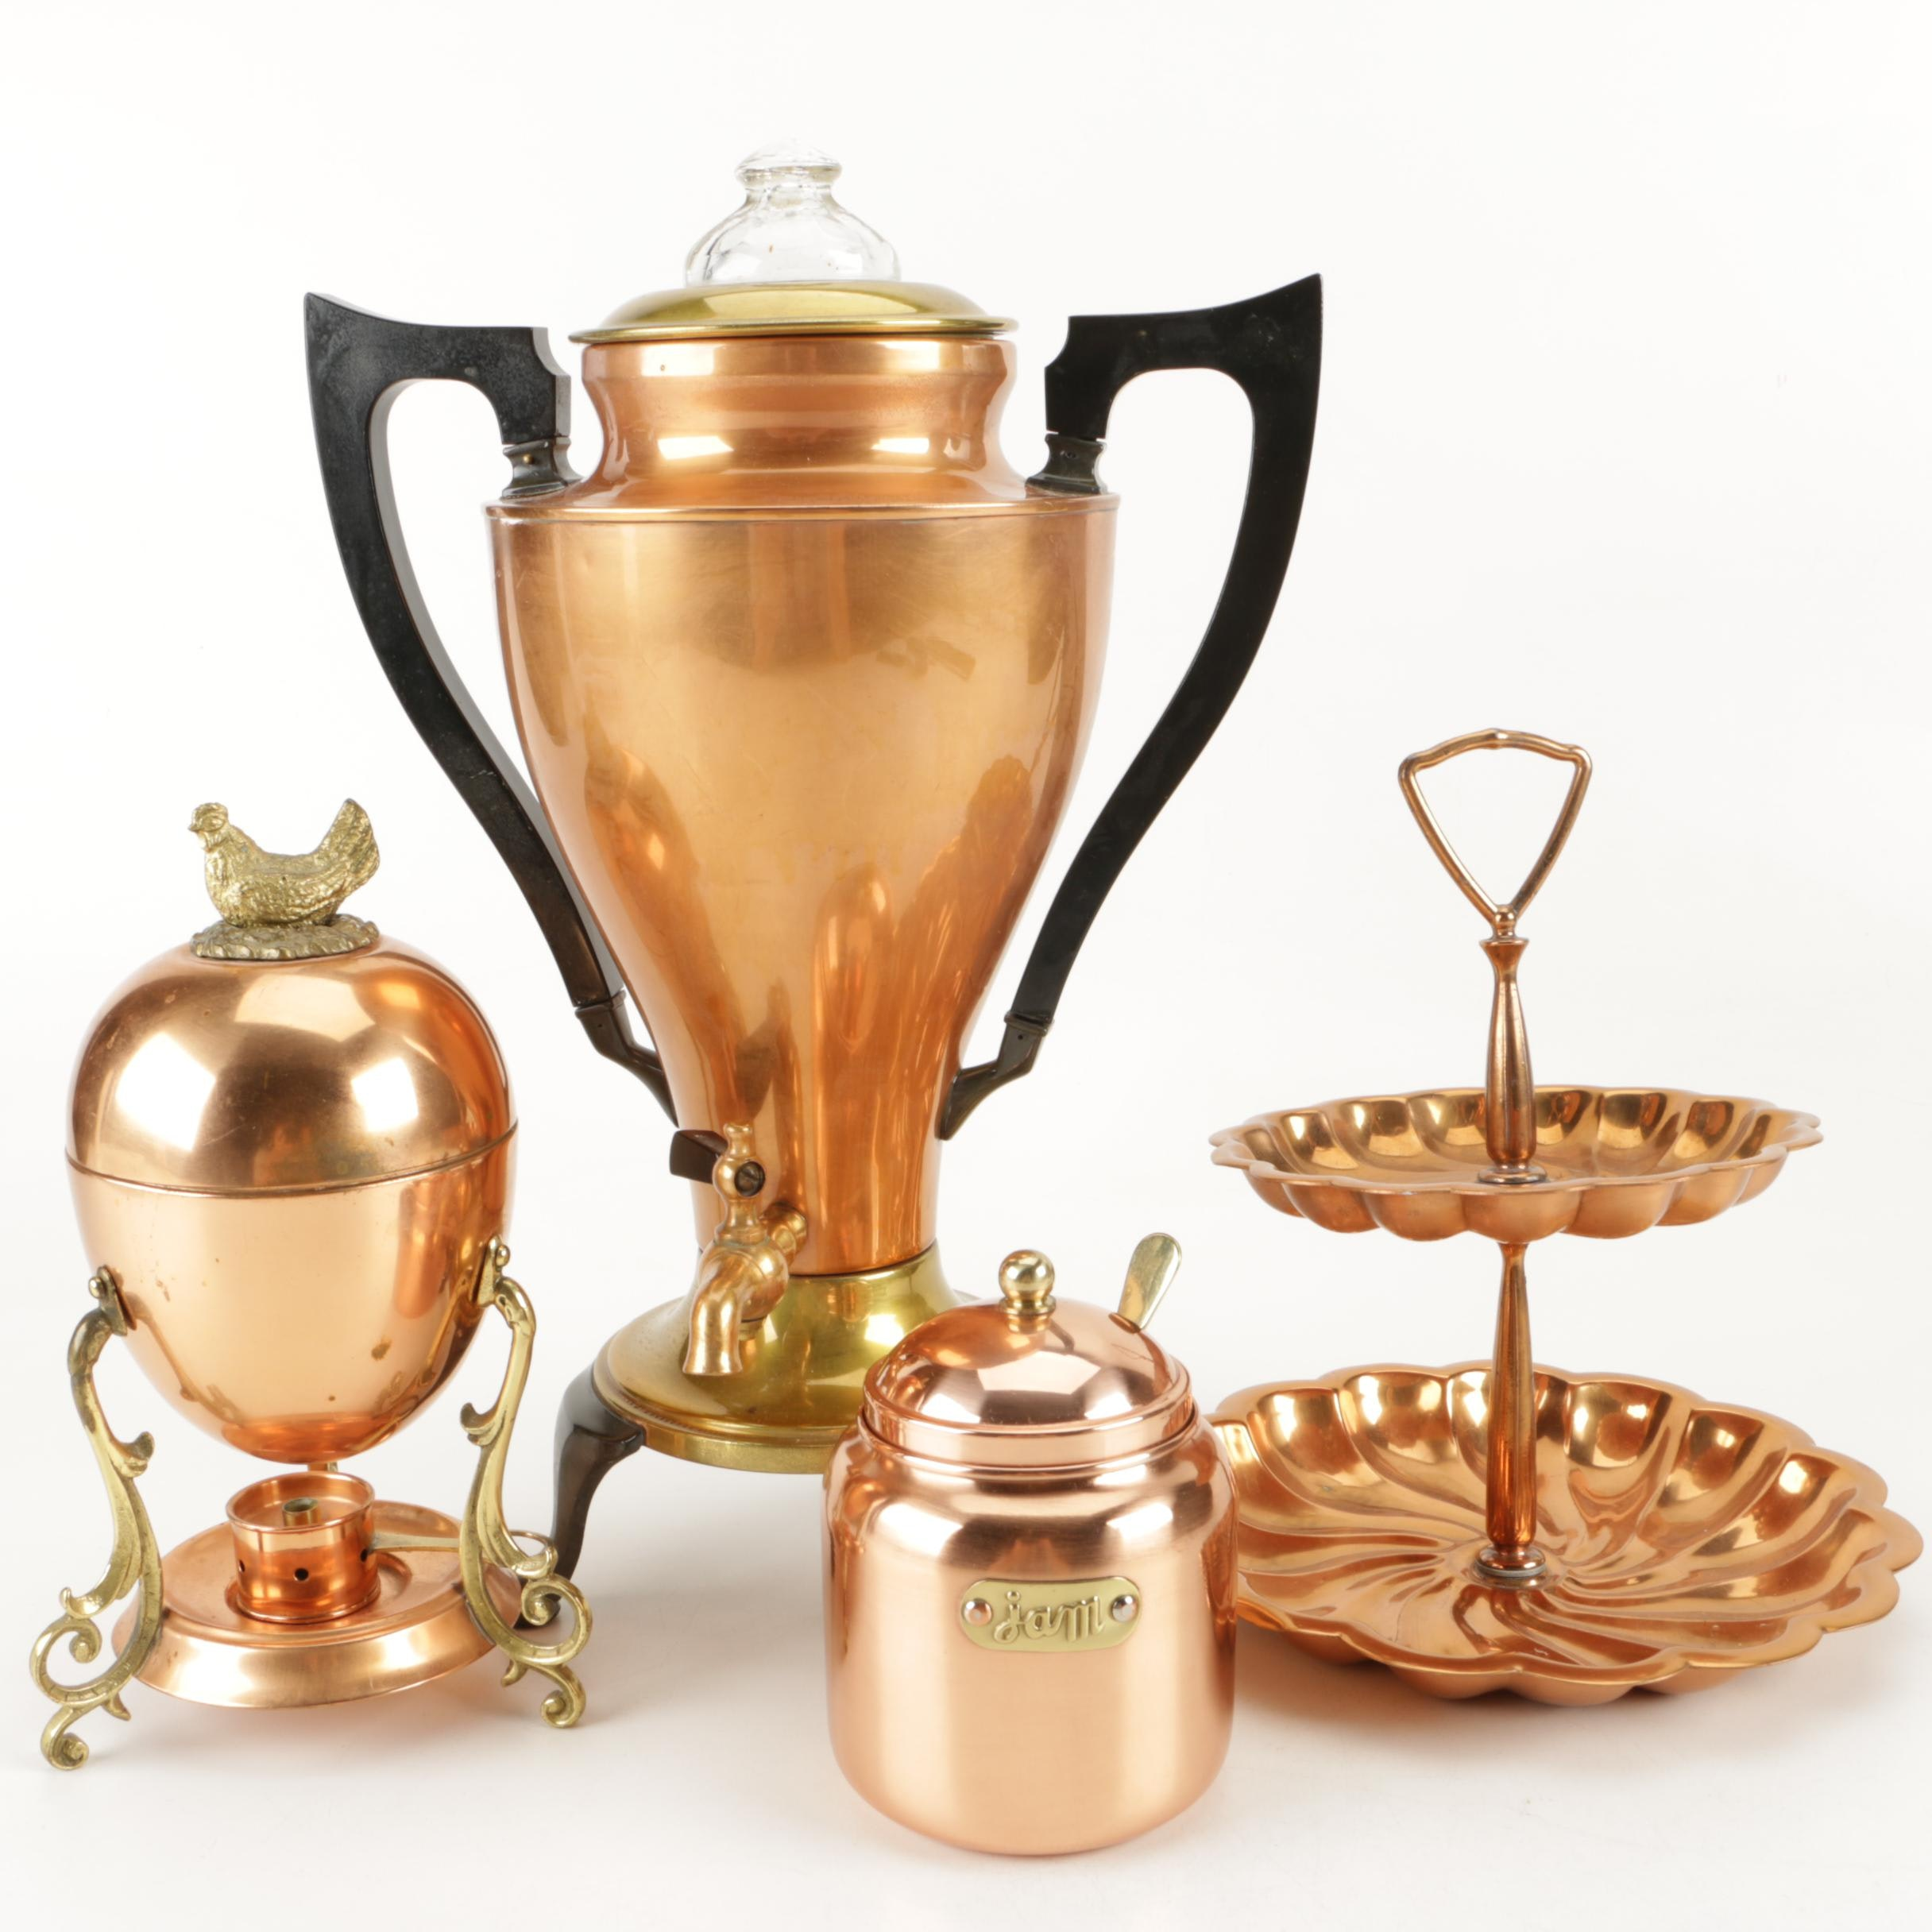 Art Deco Royal Rochester Percolater with Assorted Brass and Copper Serveware